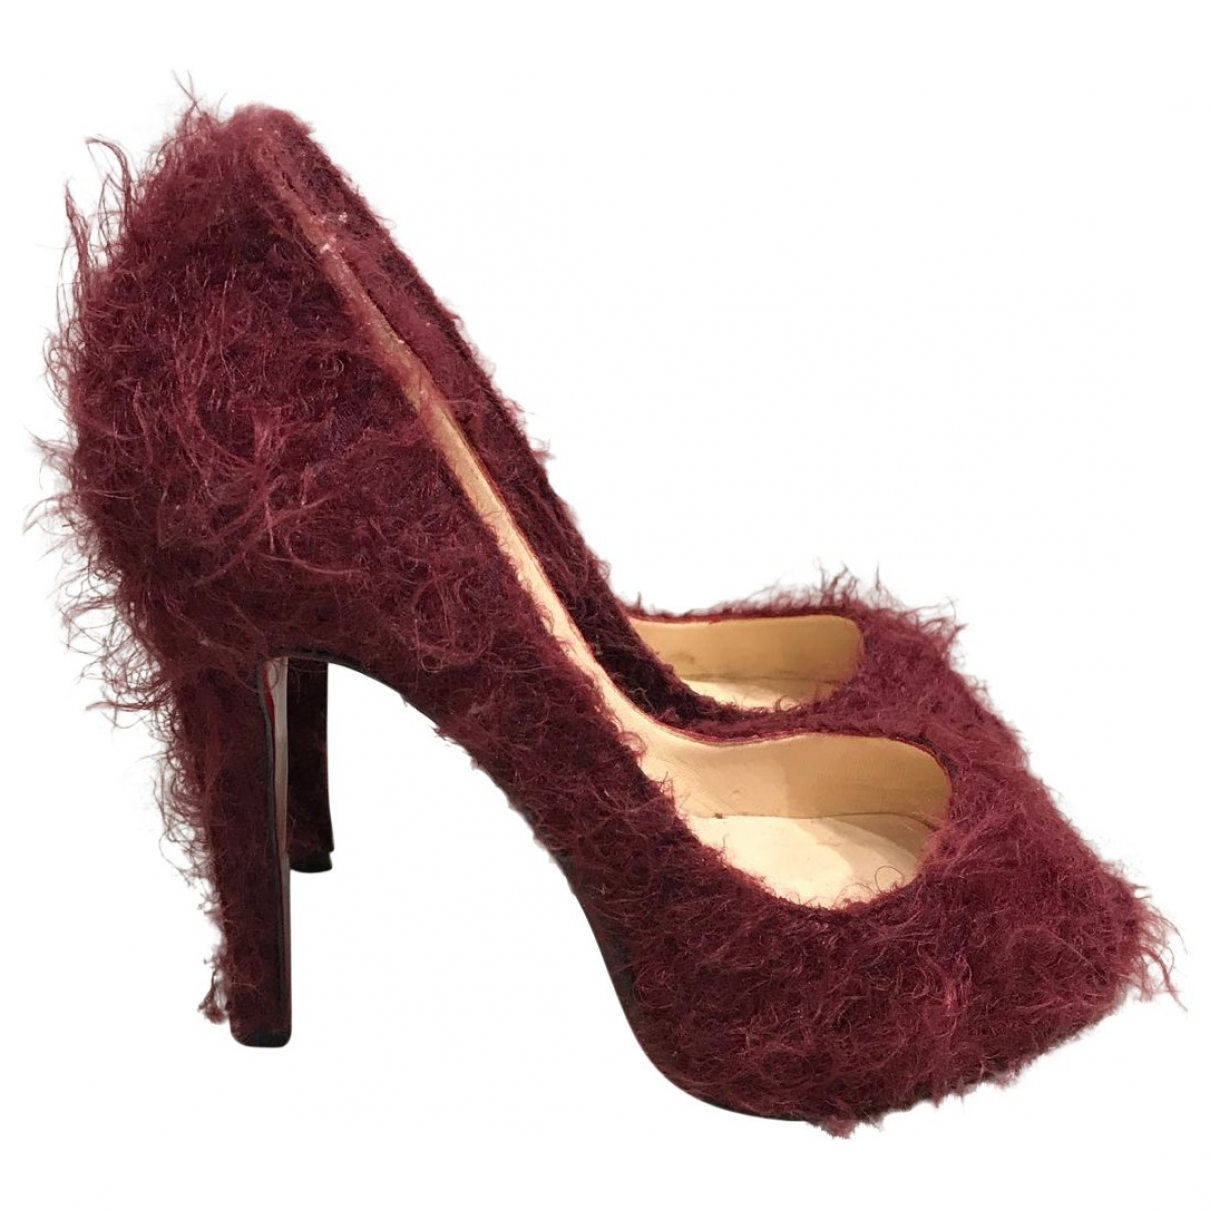 Christian Louboutin - Escarpins Very Prive pour femme en fourrure synthetique - bordeaux